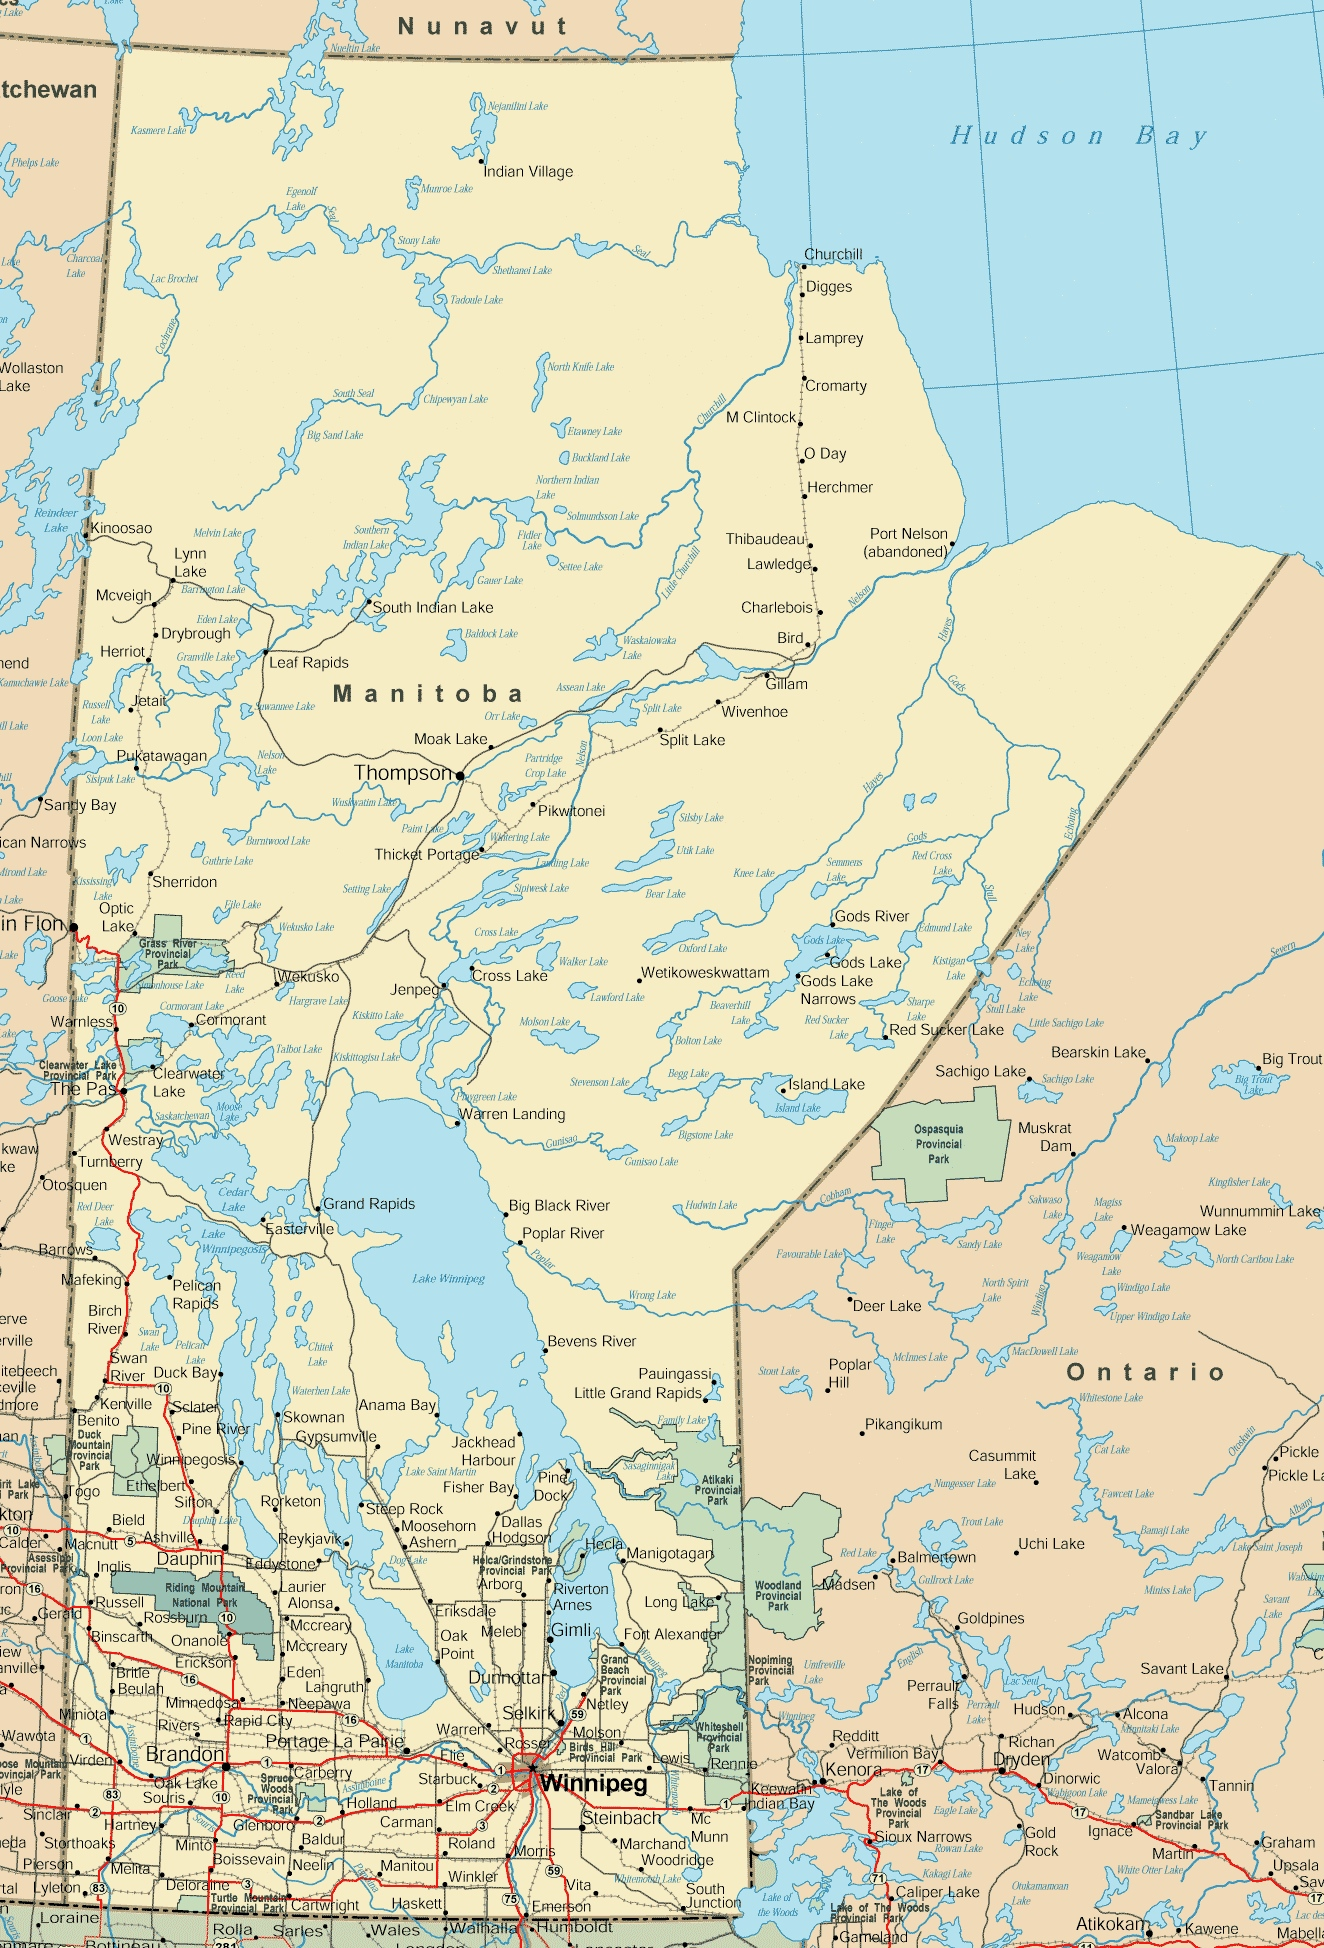 Manitoba Road Map - Large us road wall map